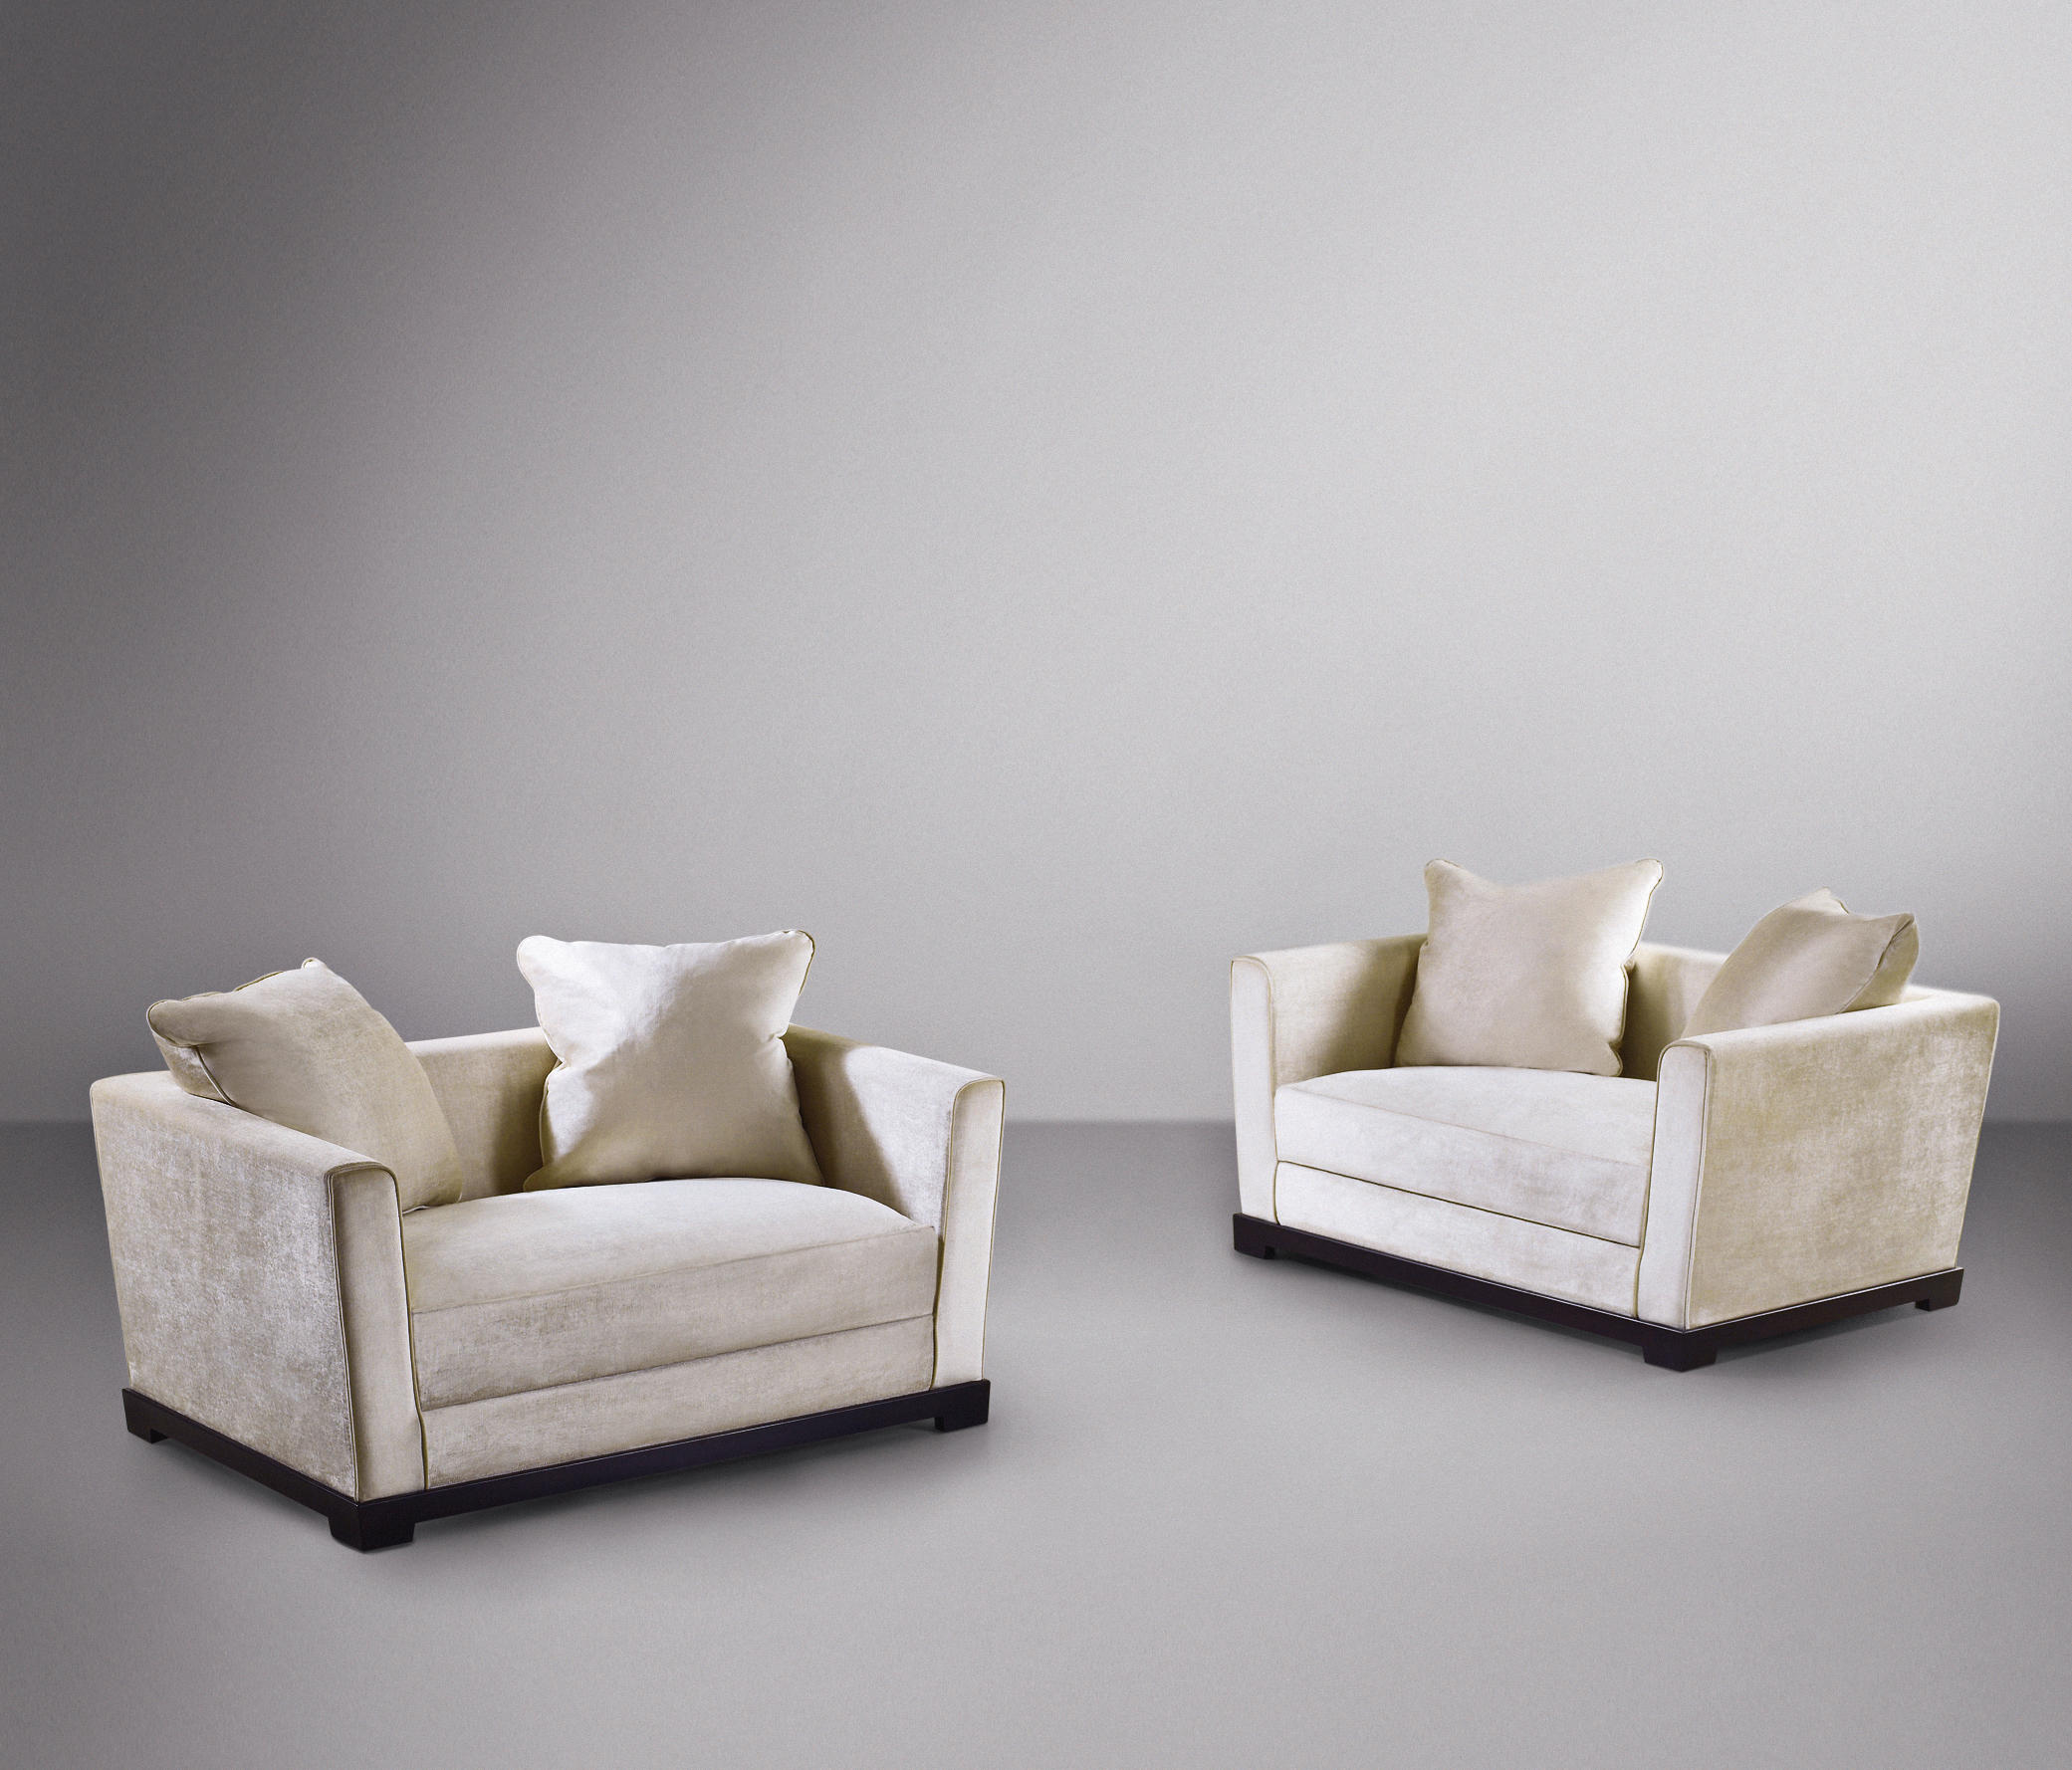 Wanda Sofa Sofas From Promemoria Architonic